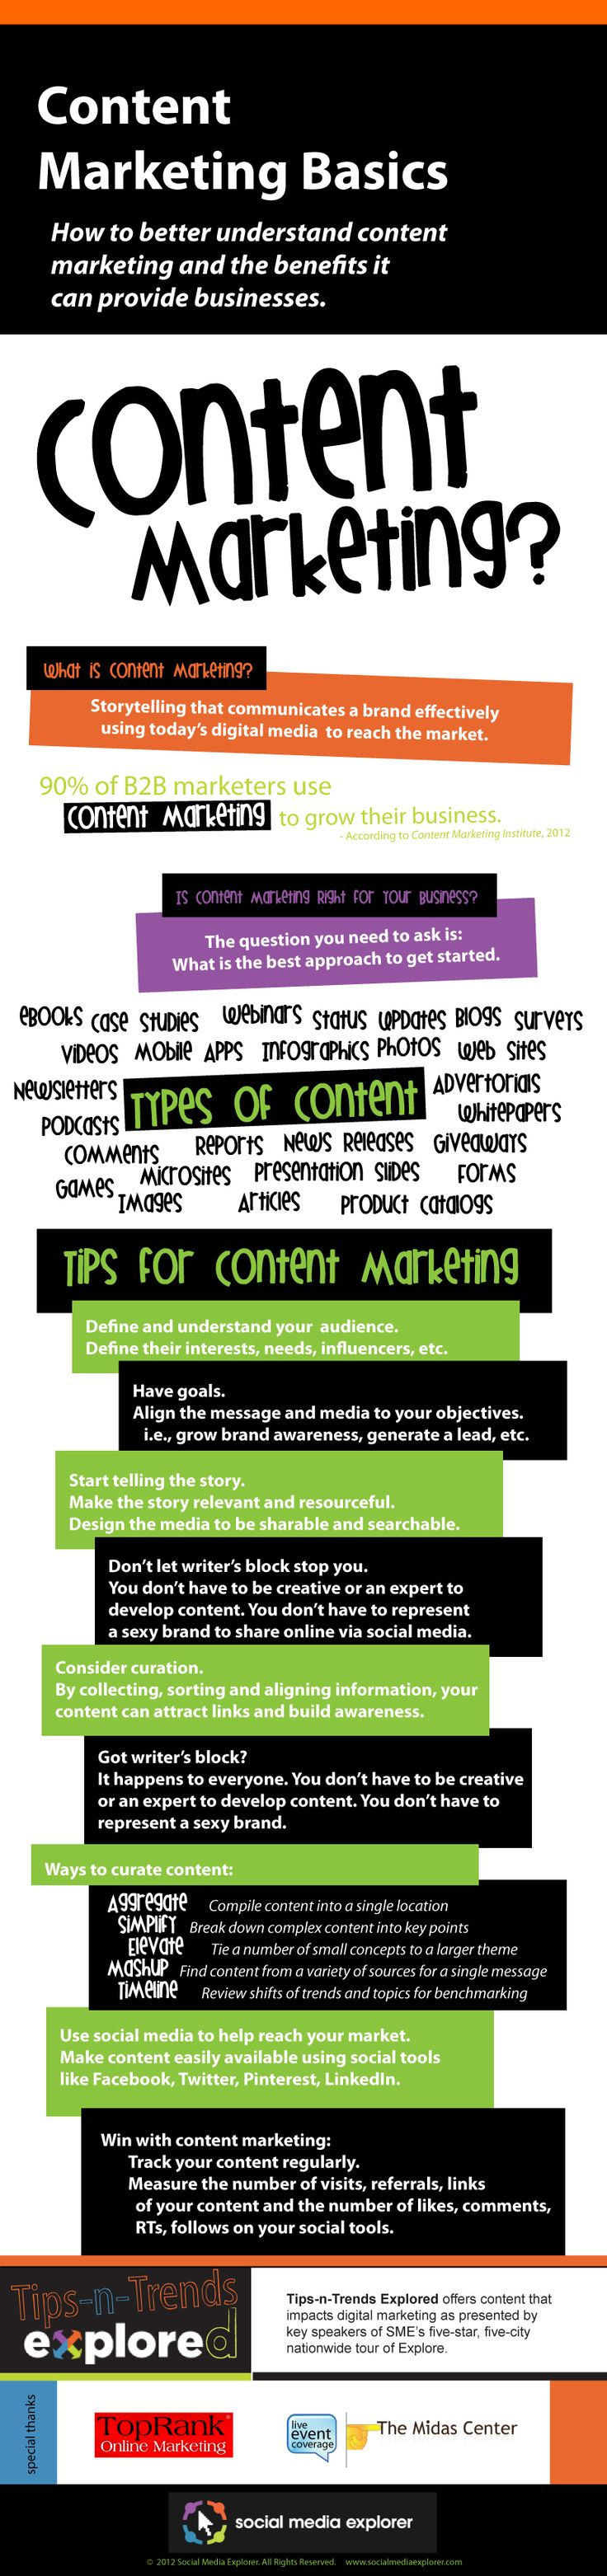 #Content #Marketing Basics